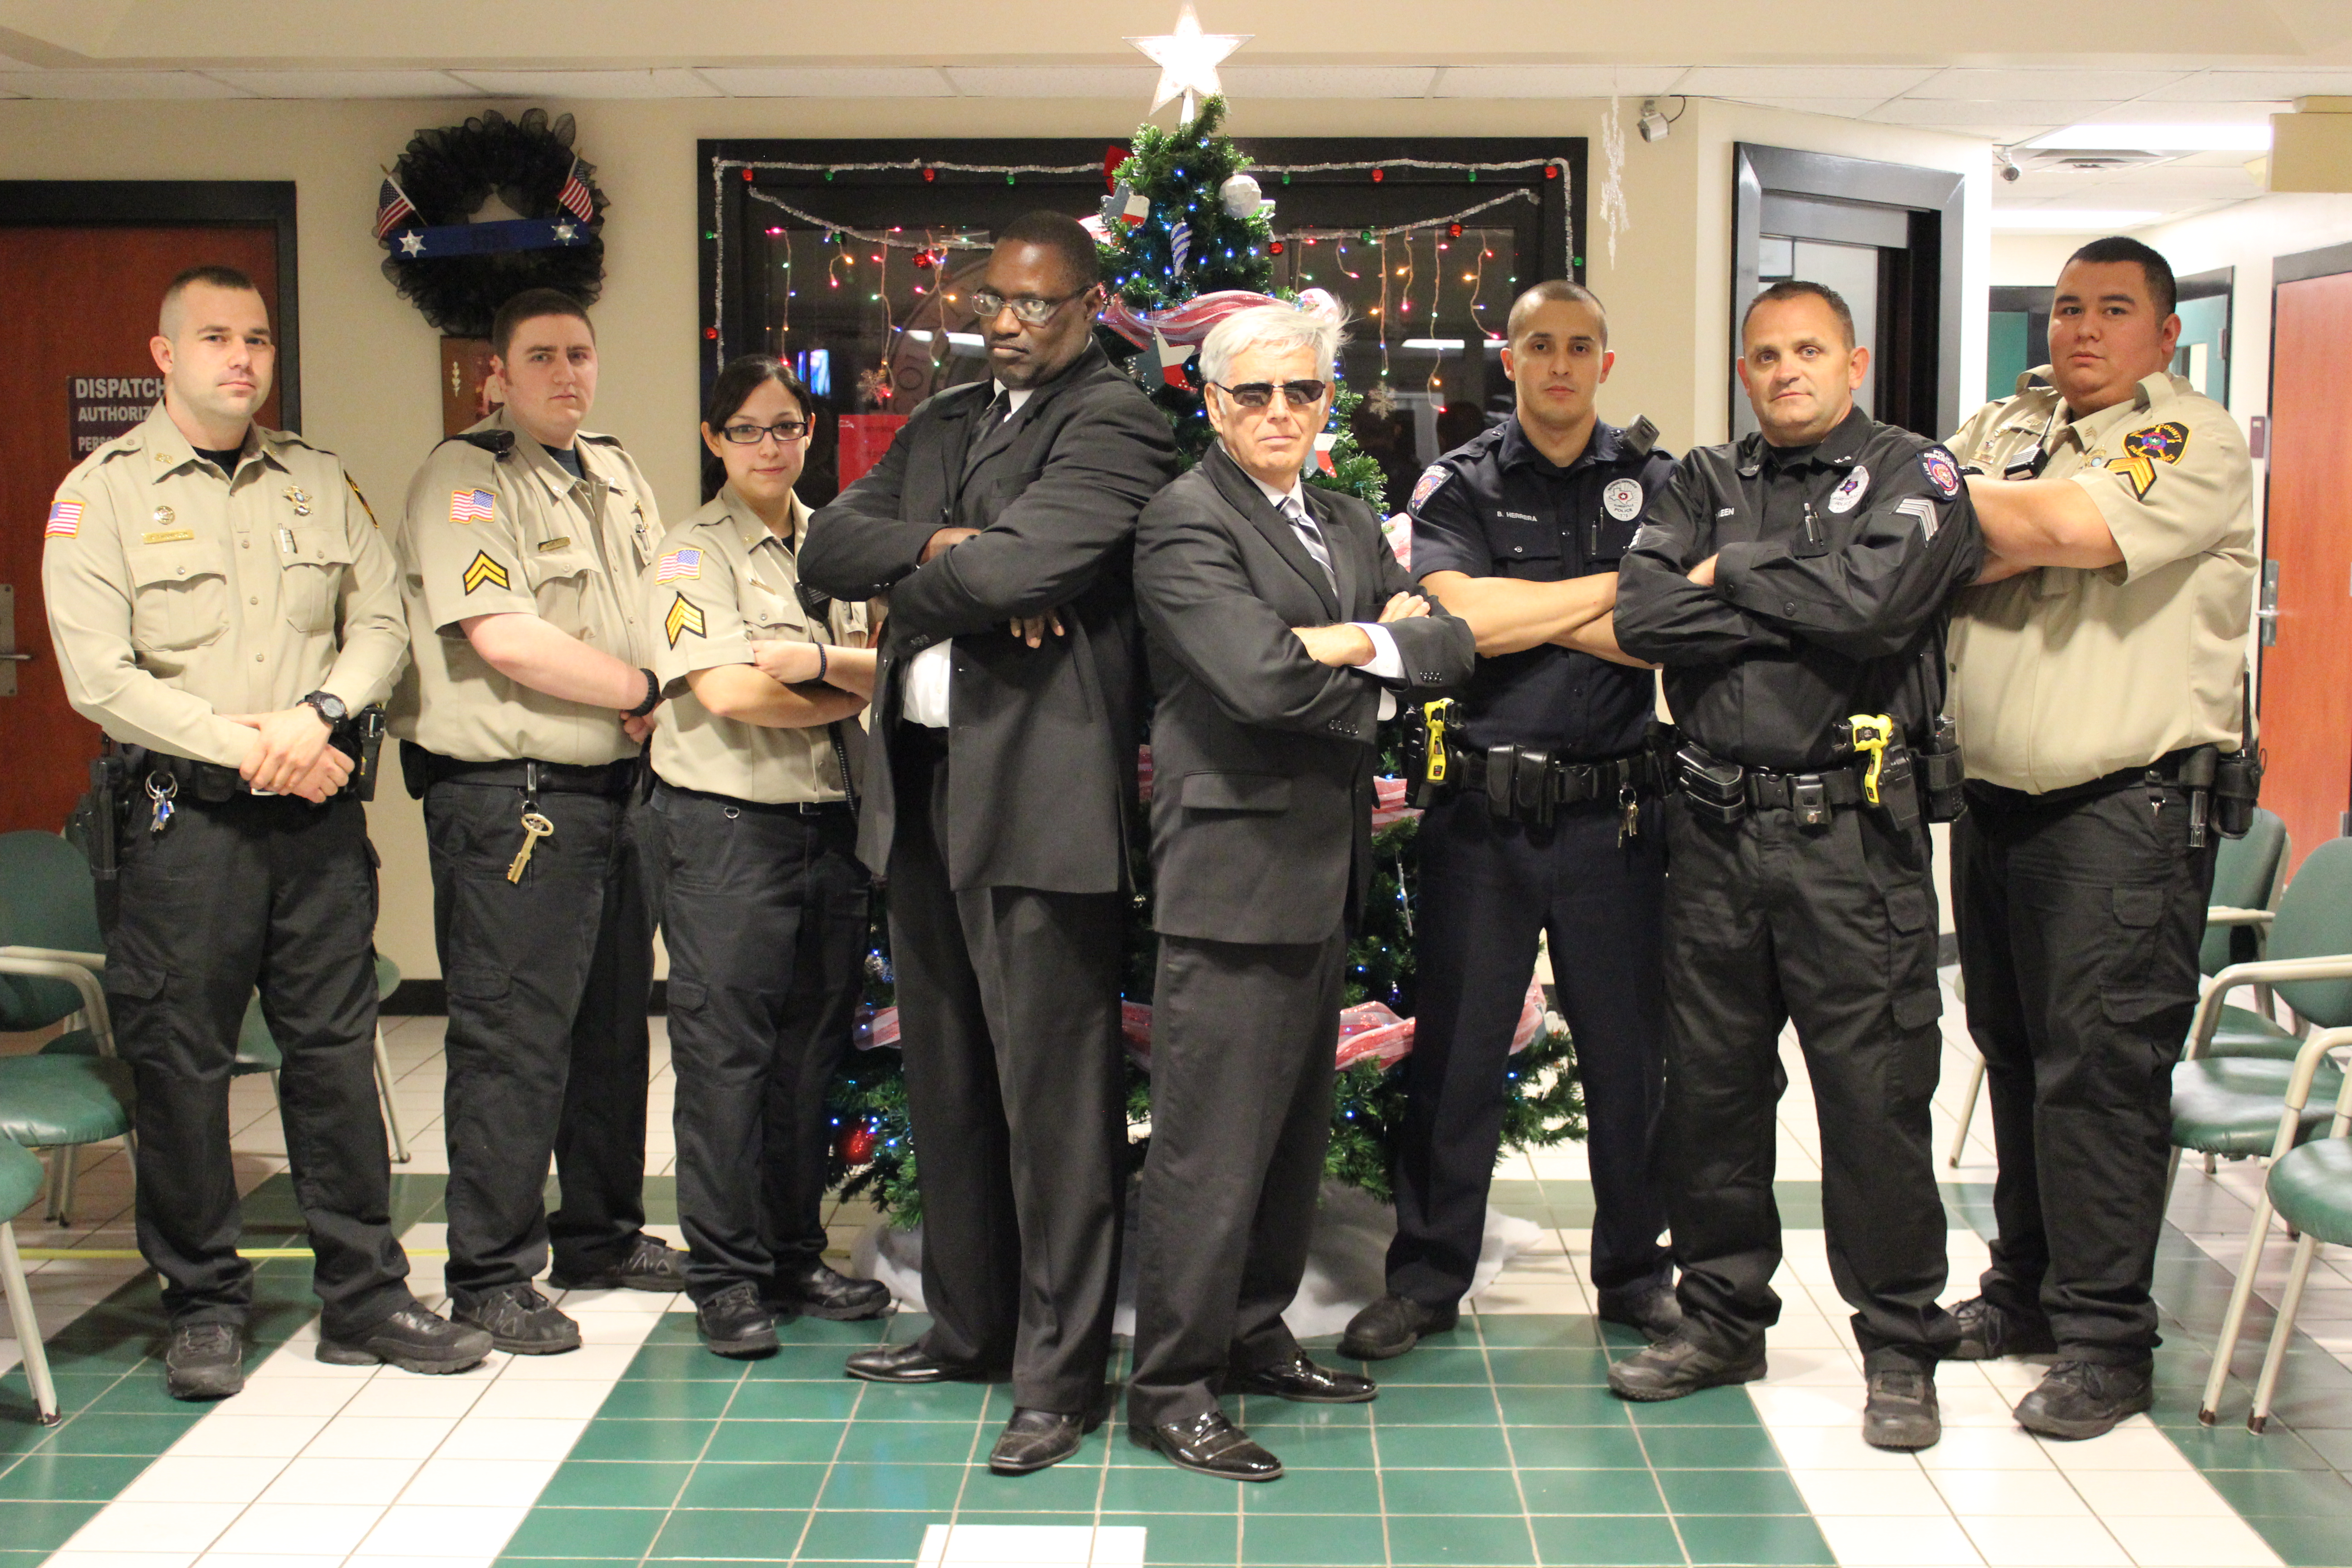 Film FBI Agents with Officers